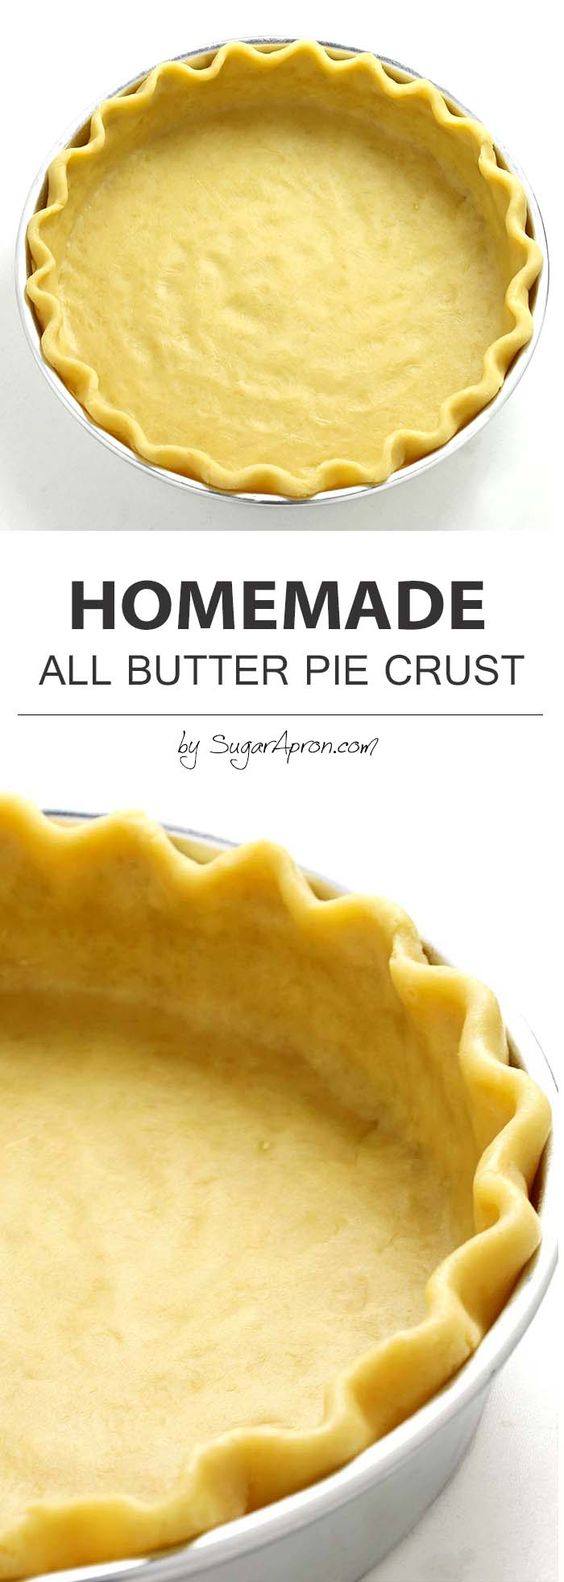 How To Make A Pie Crust Using A Food Processor